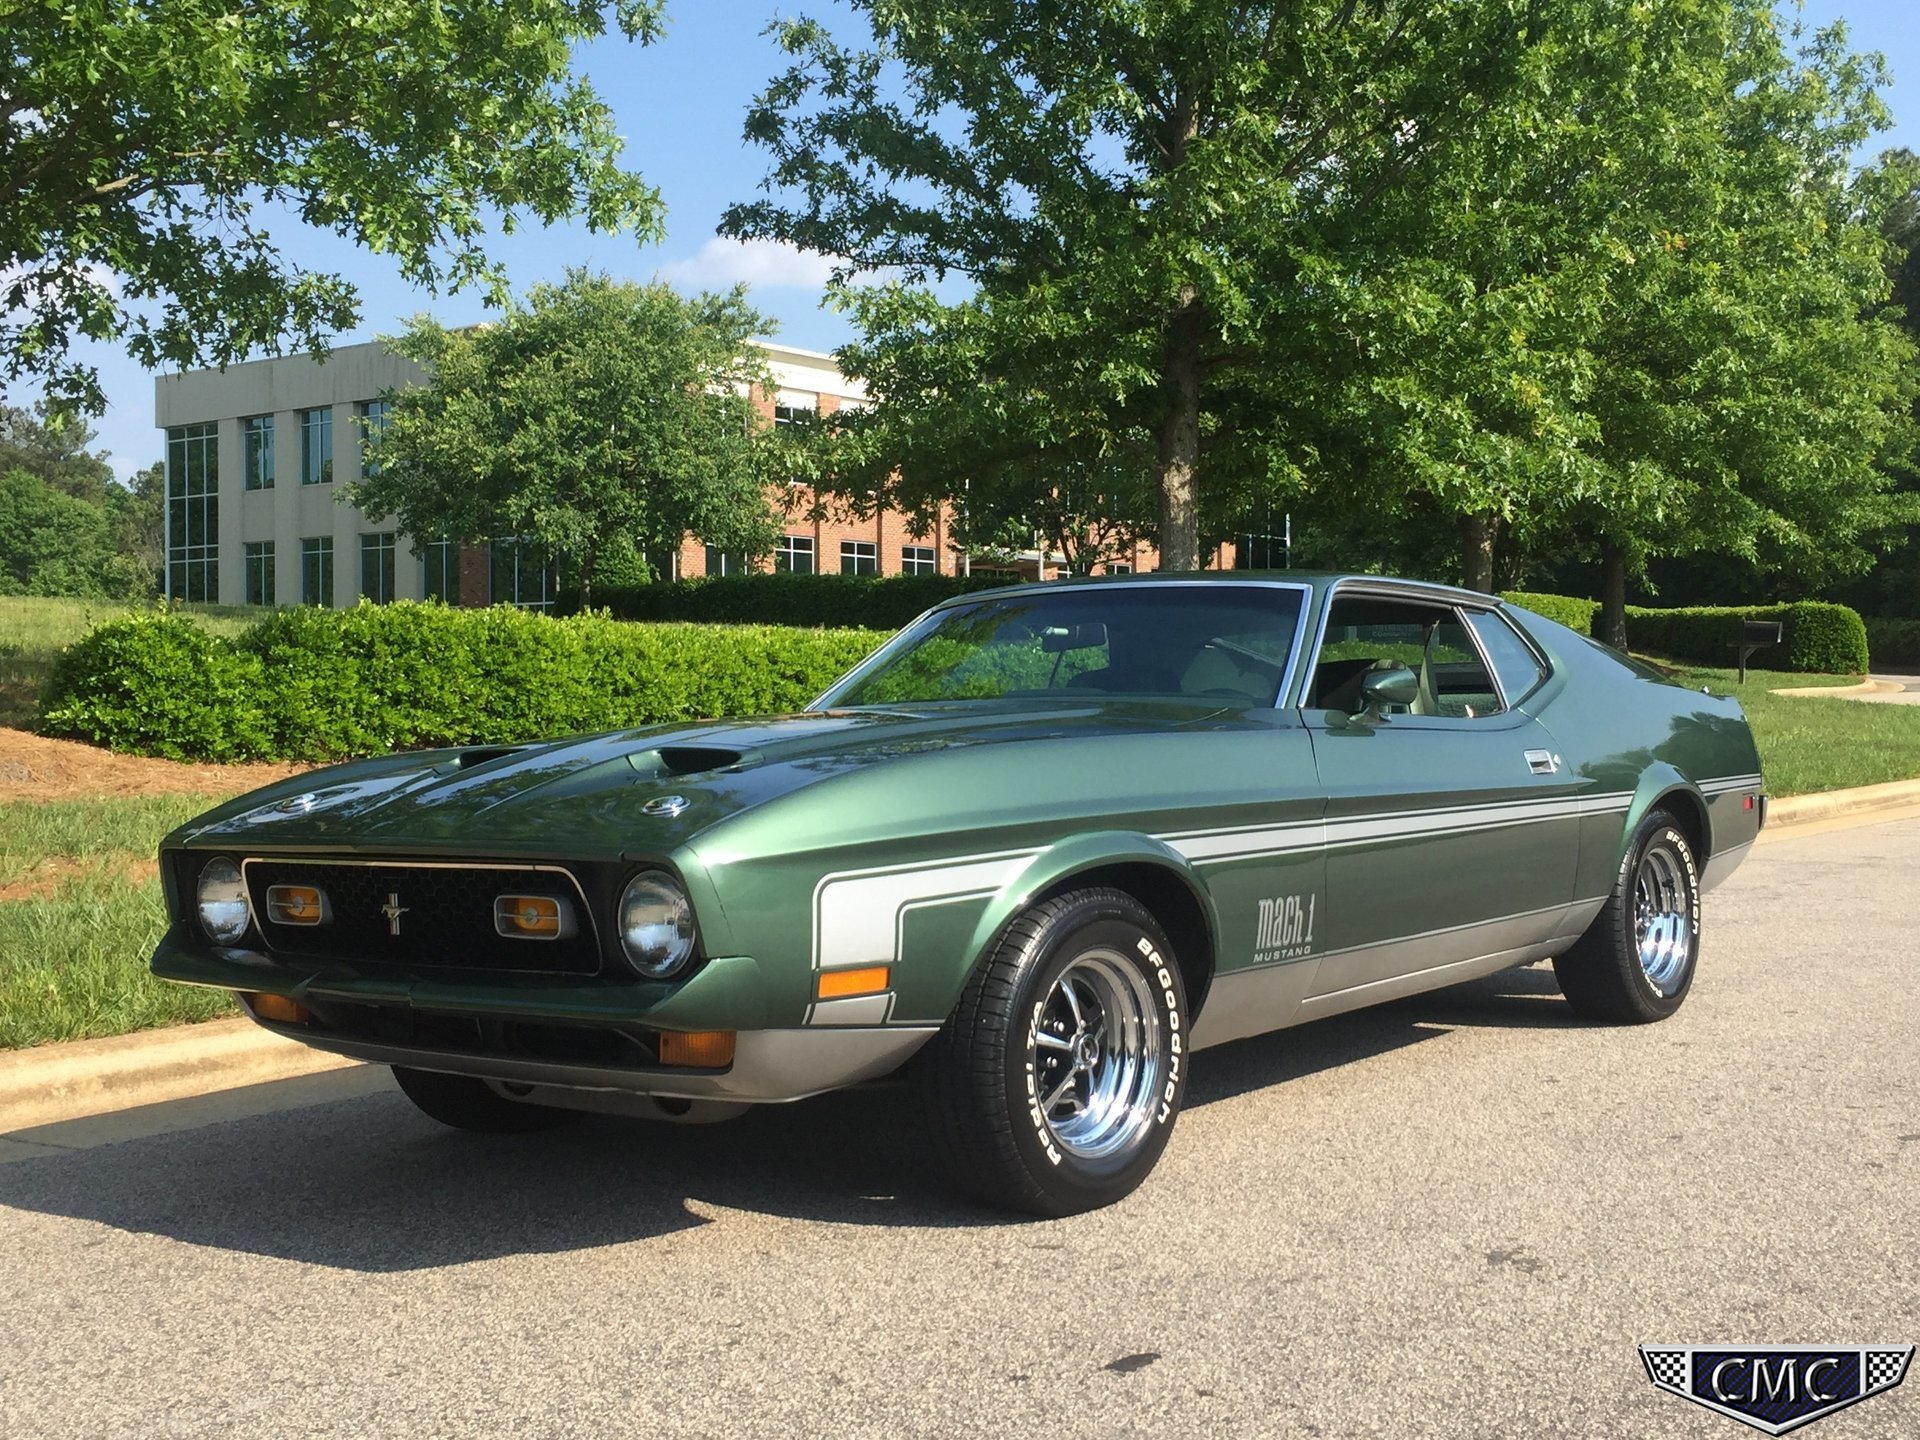 1972 ford mustang mach 1 for sale 50582 mcg. Black Bedroom Furniture Sets. Home Design Ideas